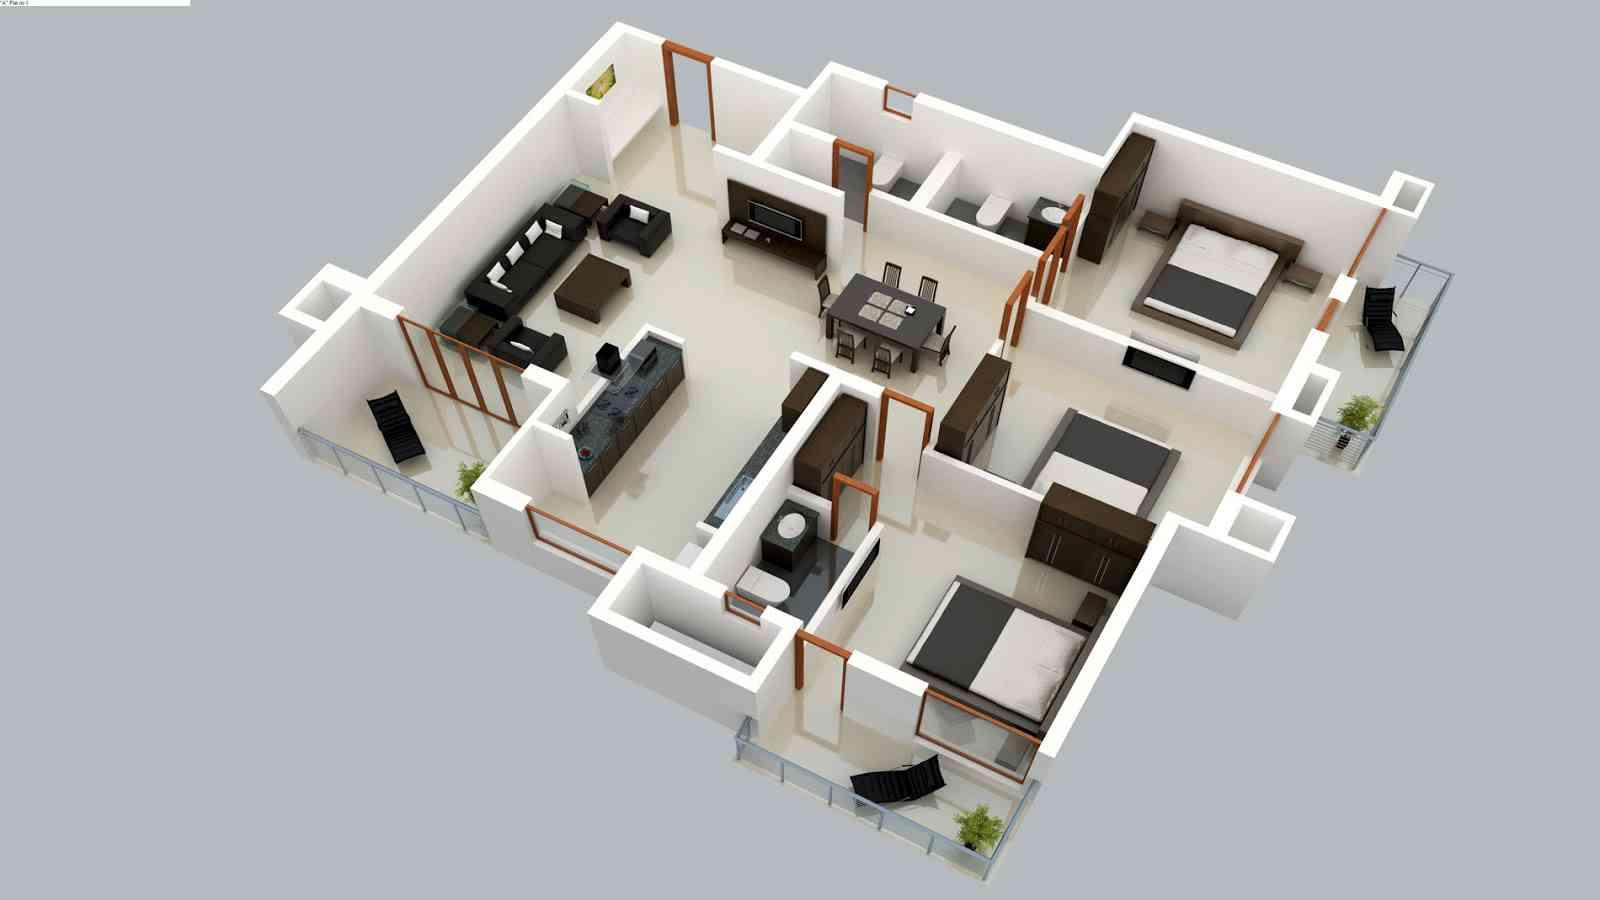 Home Design Plans 3D Creative Fascinating 3D Home Floor Plan Ideas  Android Apps On Google Play Inspiration